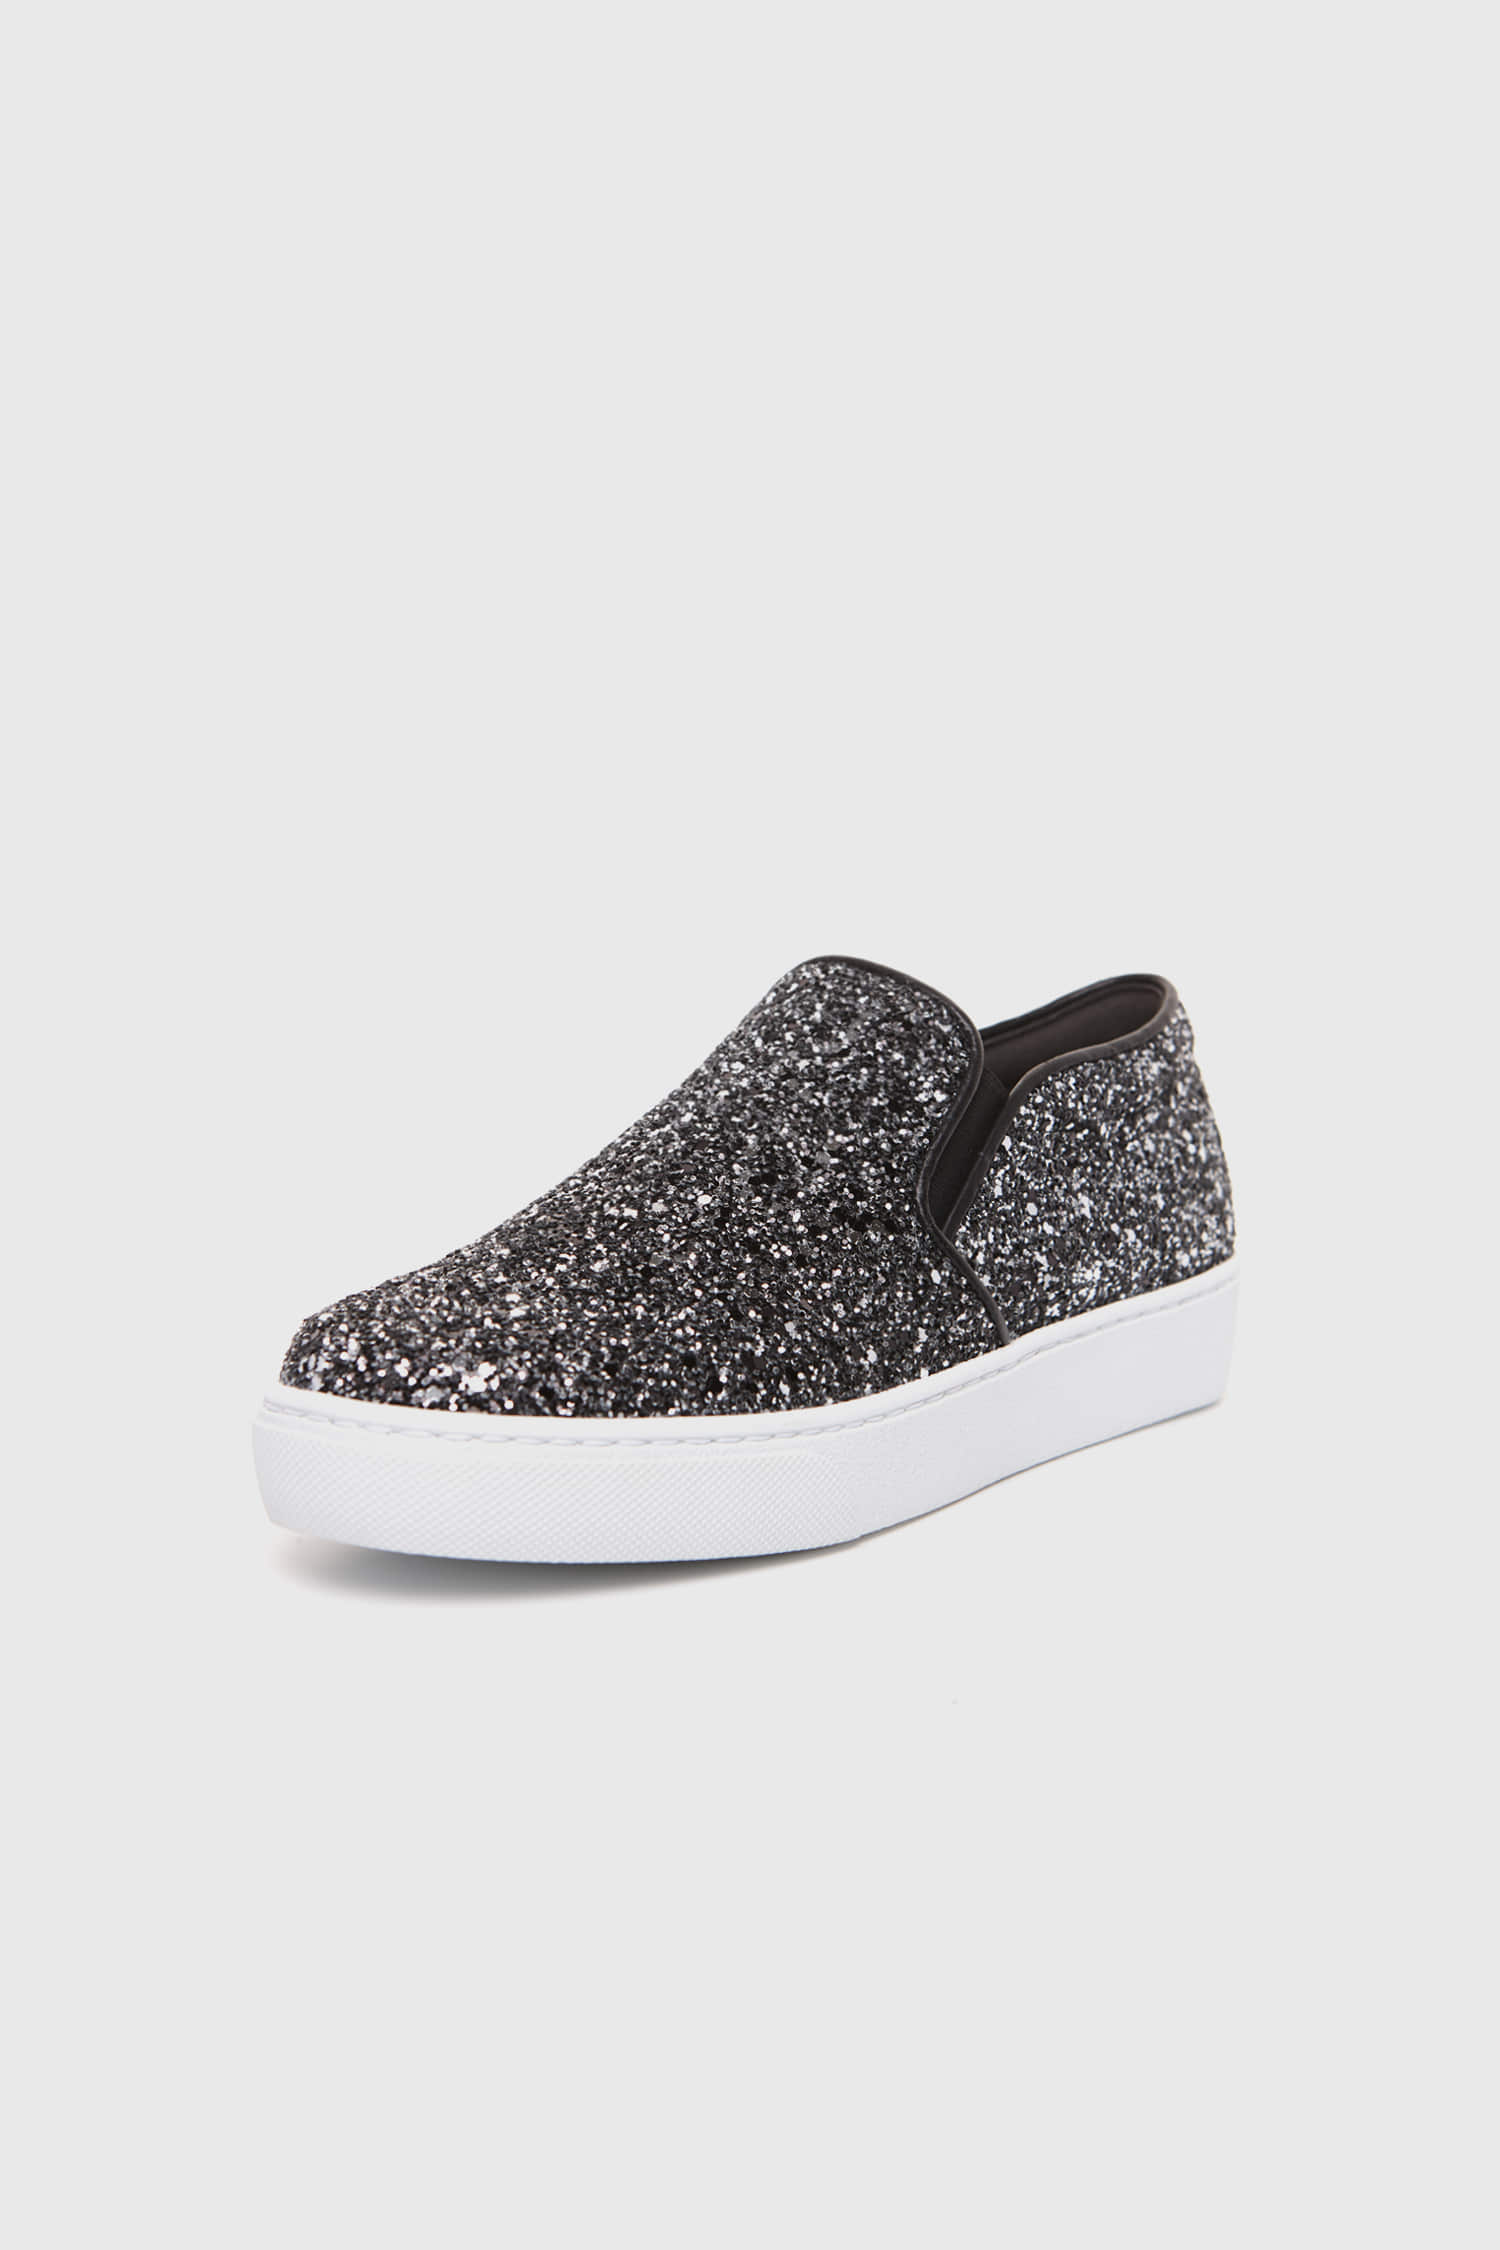 SHINING SLIP-ON BLACK